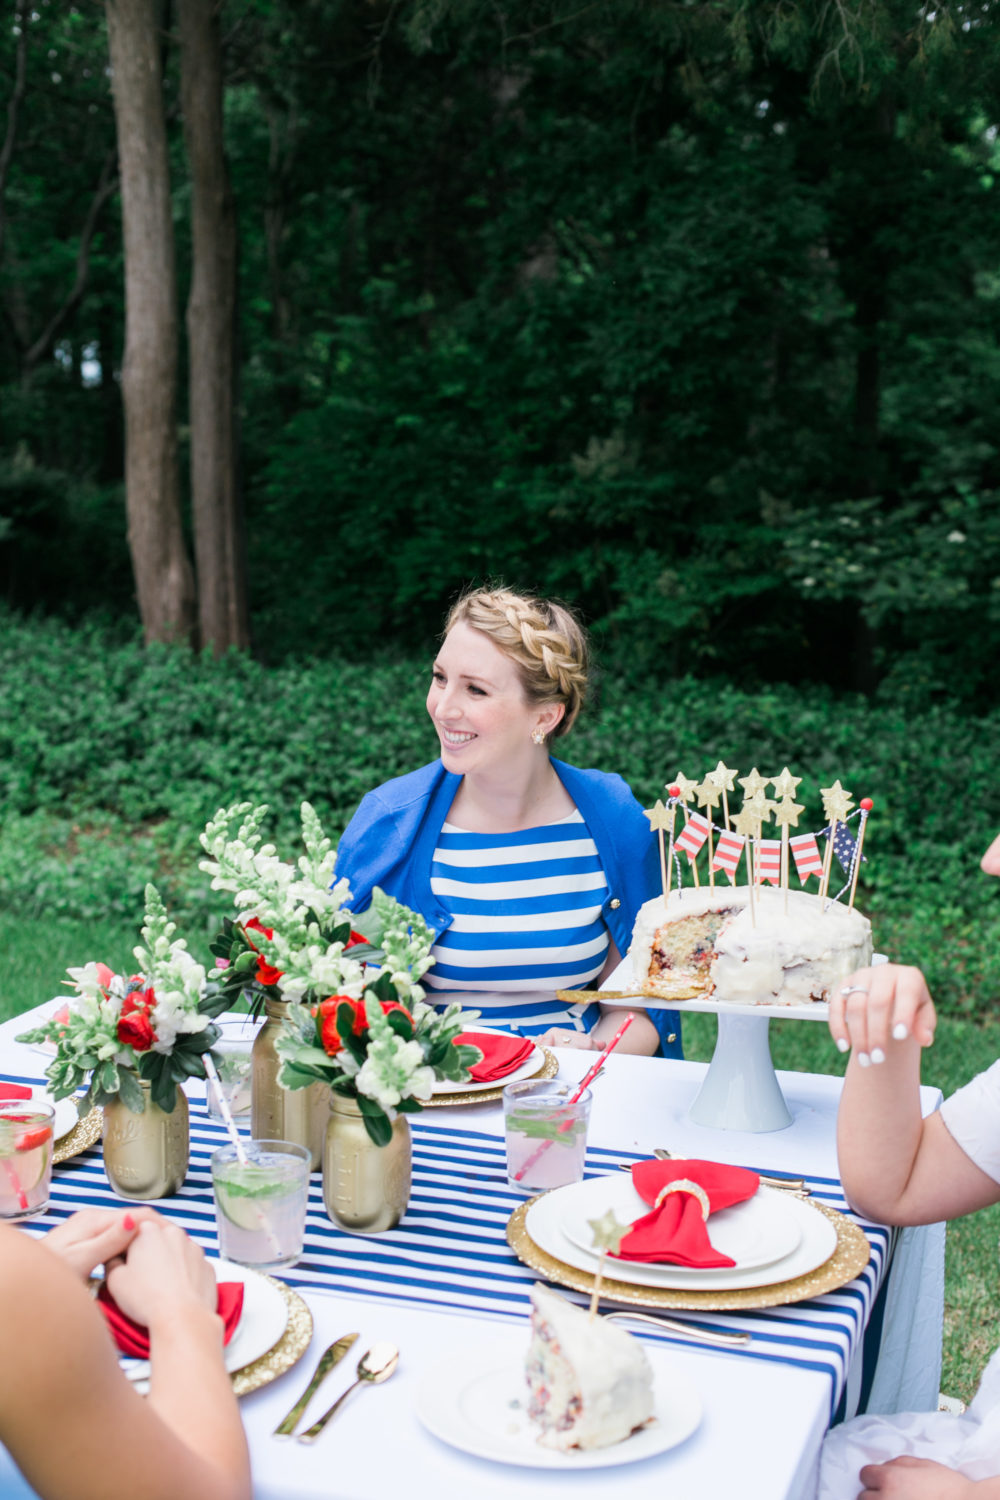 Memorial Day Party Ideas MDW Table, Red White and Blue, Memorial Day Party Theme, Kate Spade Outlet striped dress